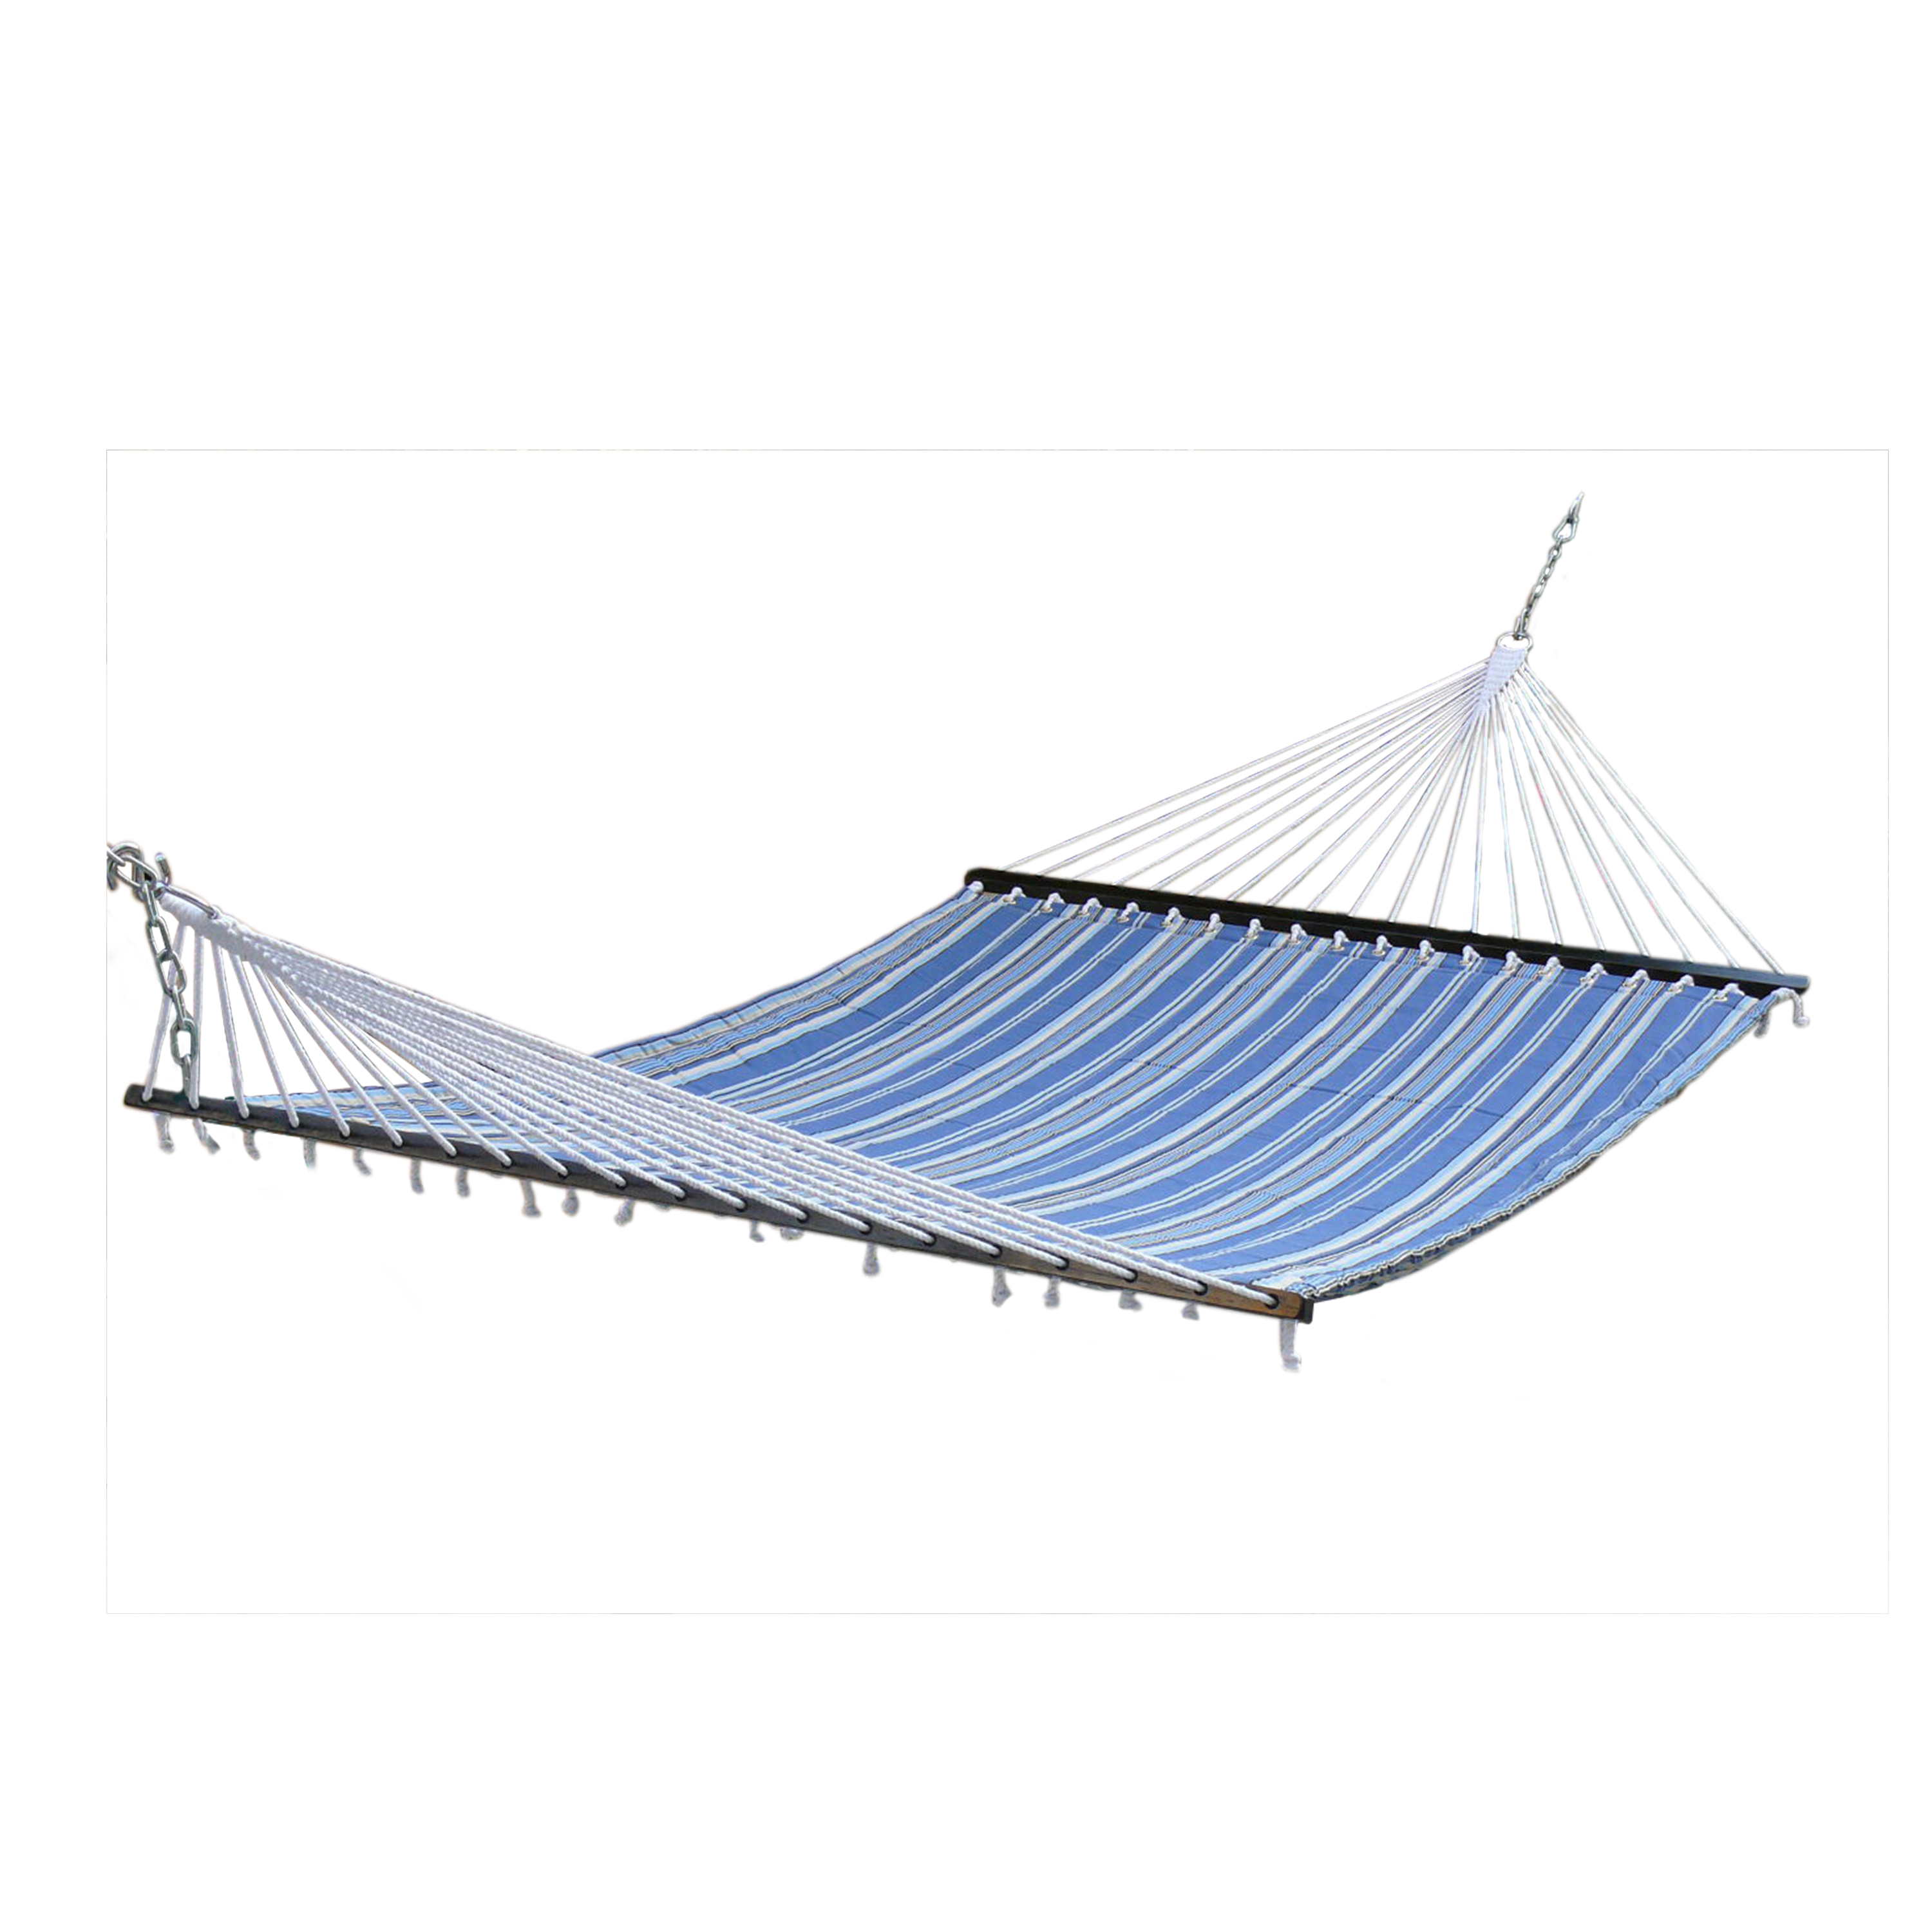 """Stansport Sunset Quilted Cotton Hammock Double 79"""" x 55"""" by Stansport"""